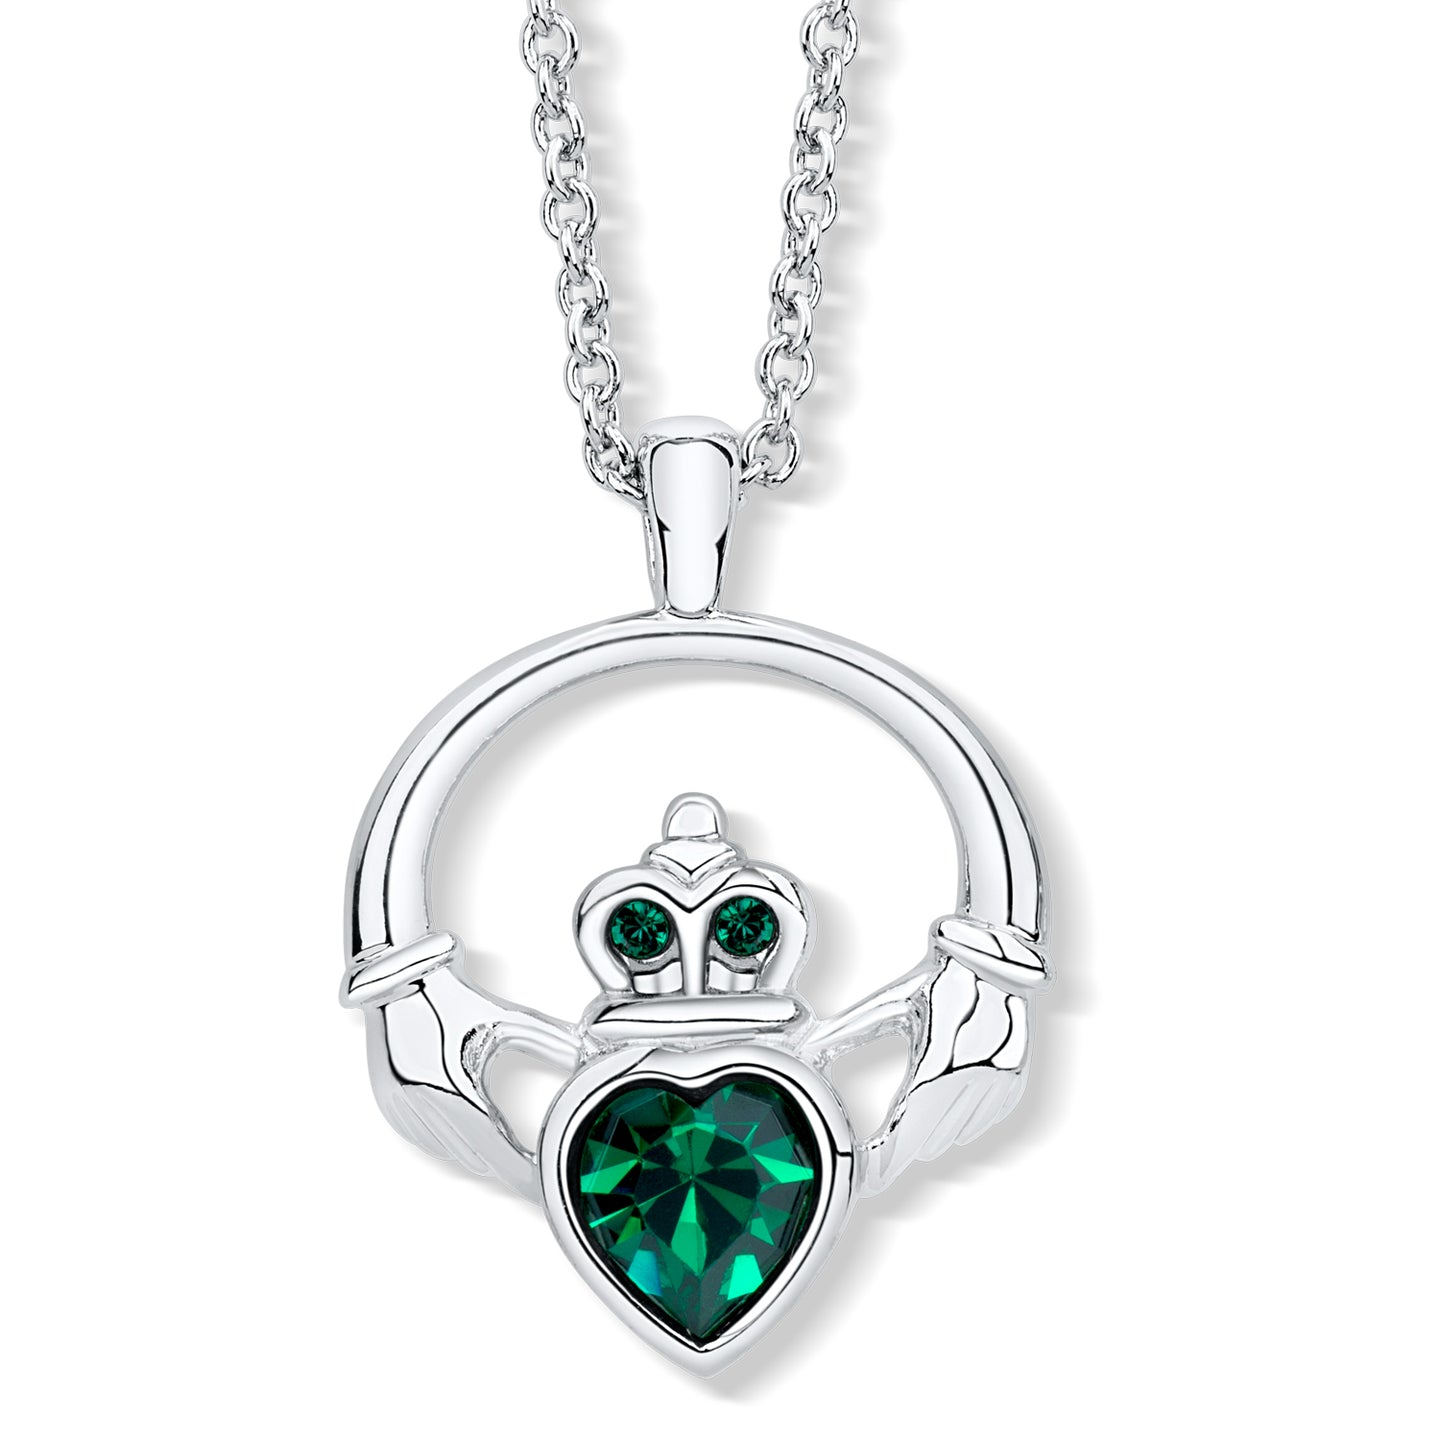 Claddagh Ring Pendant set with Emerald Crystal